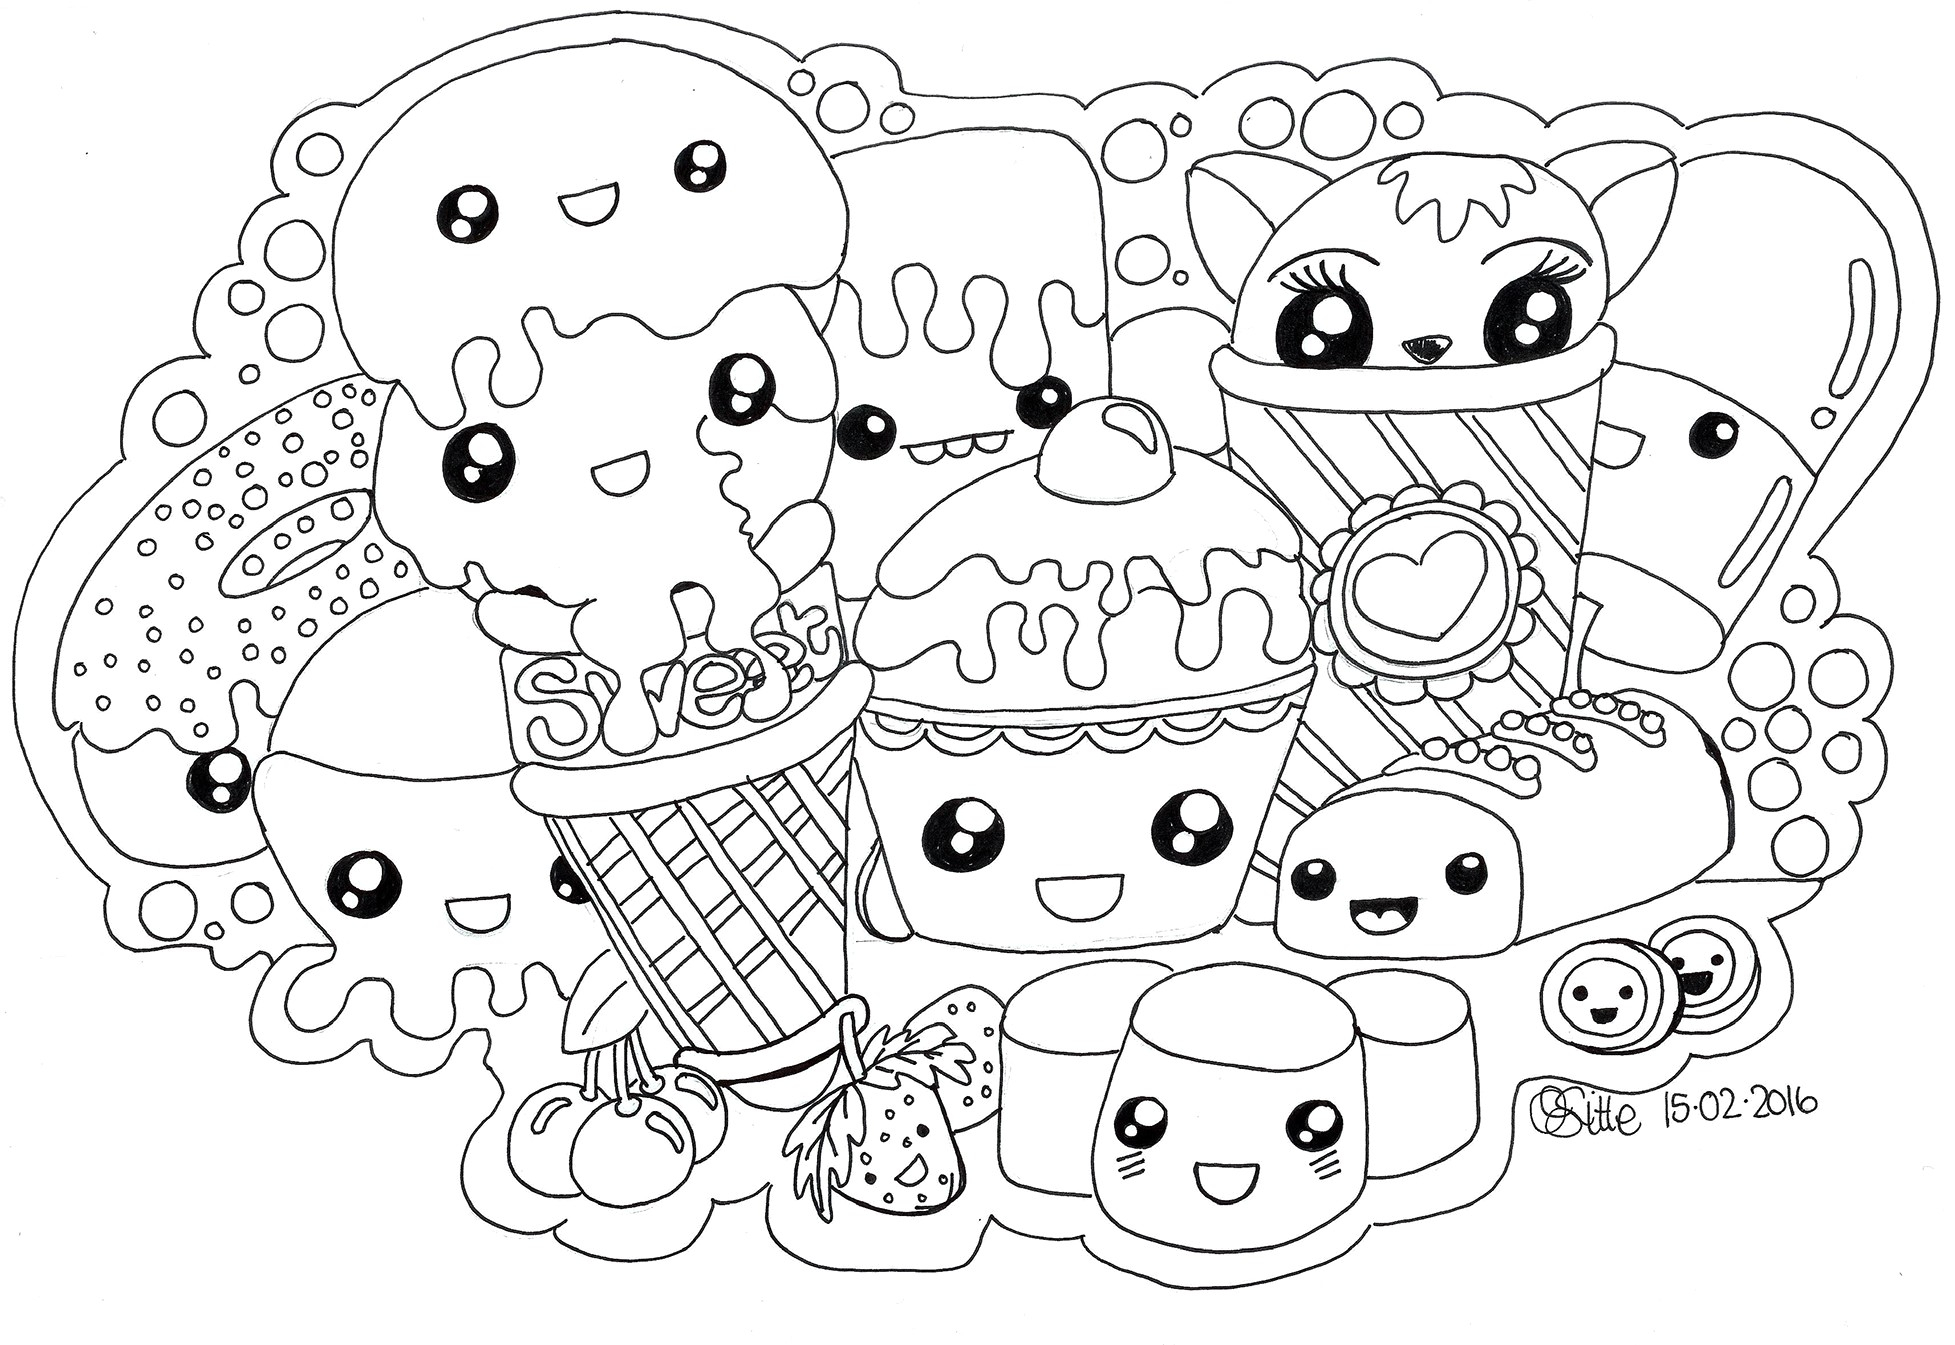 Cute Unicorn Coloring Pages To Print Fresh Kawaii Cat Page Free 1955 - Free Printable Unicorn Coloring Pages